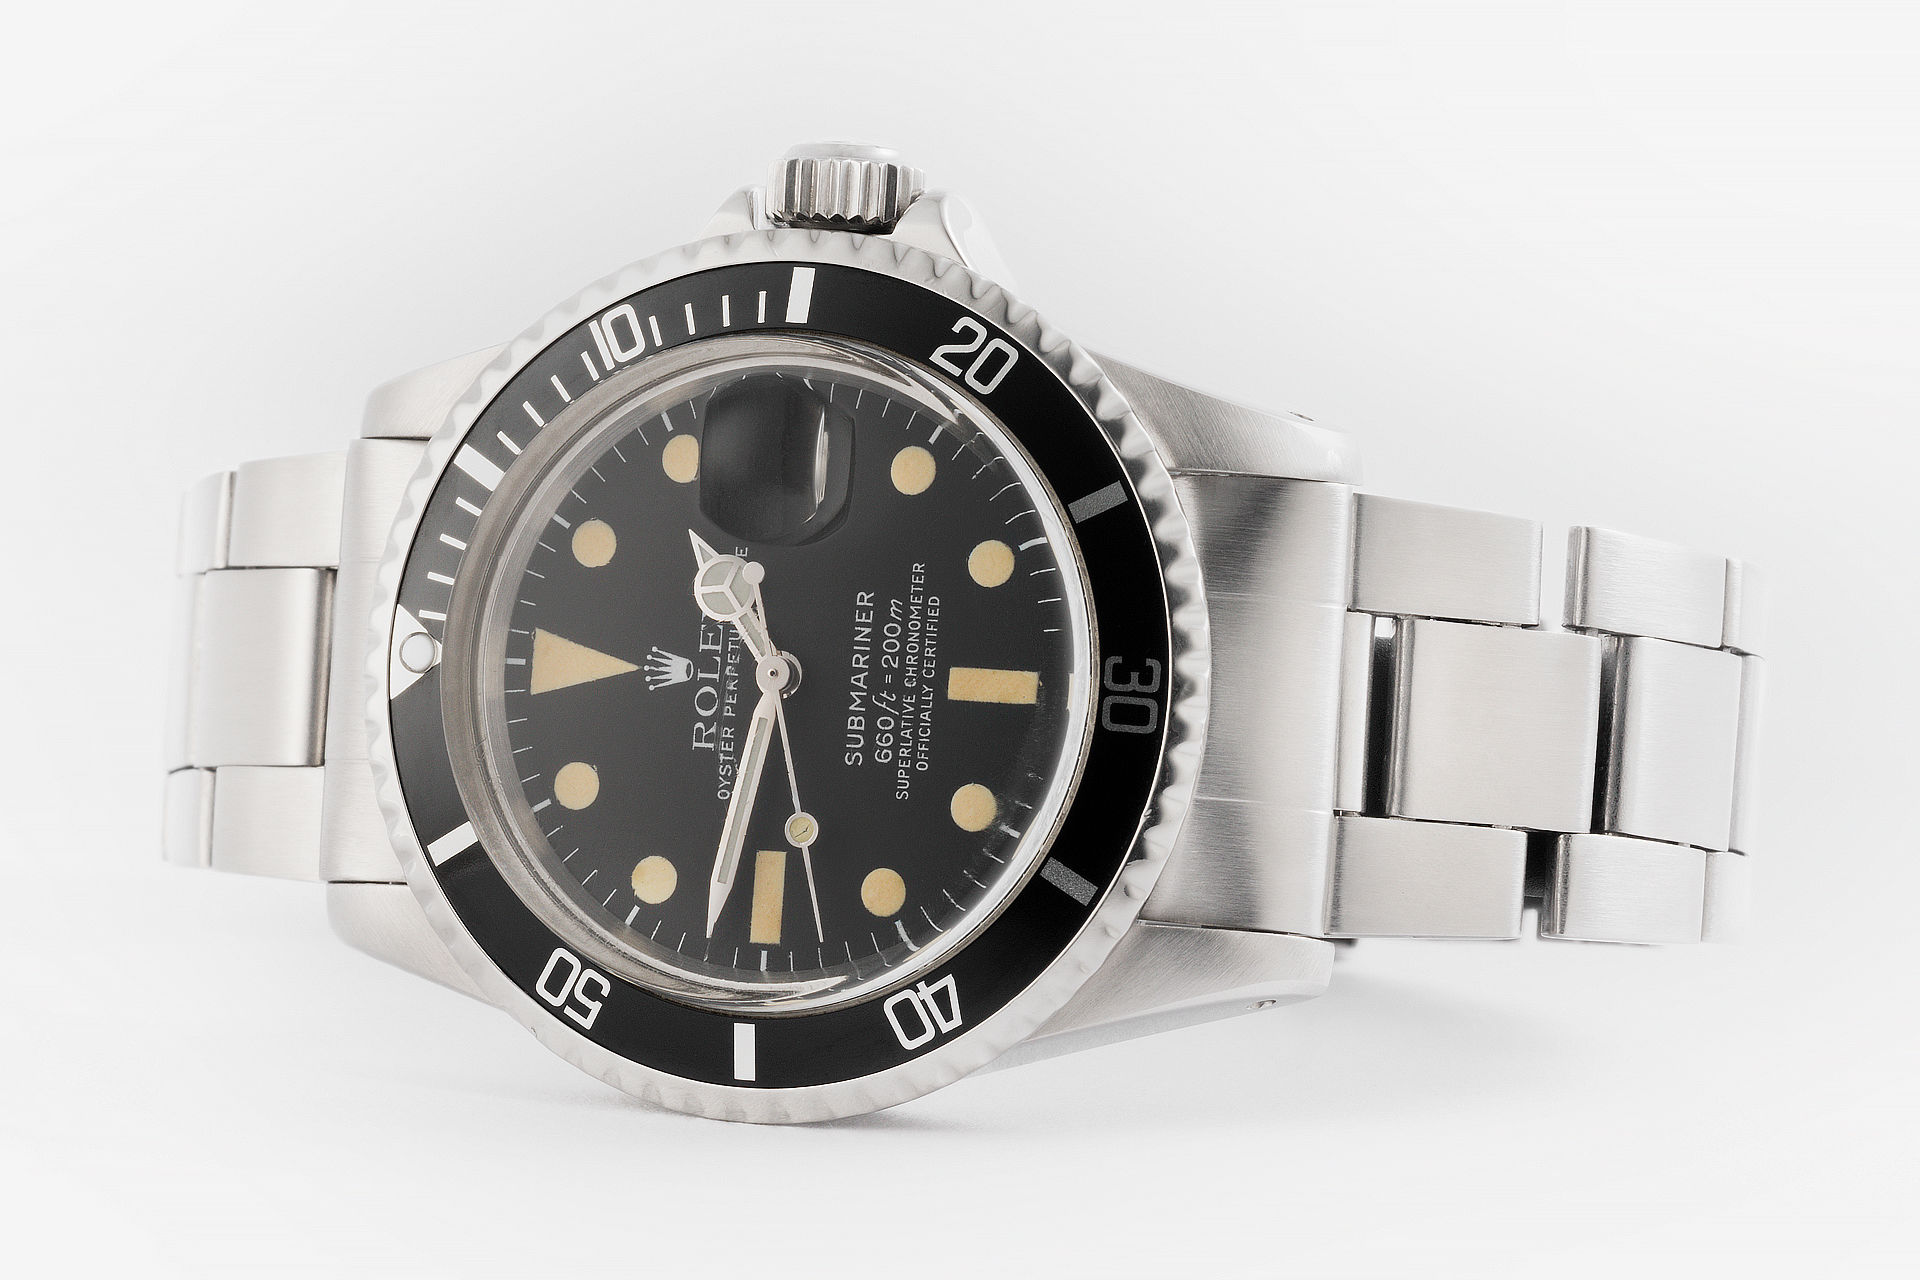 ref 1680 | Vintage Model Mk II 'All White' | Rolex Submariner Date